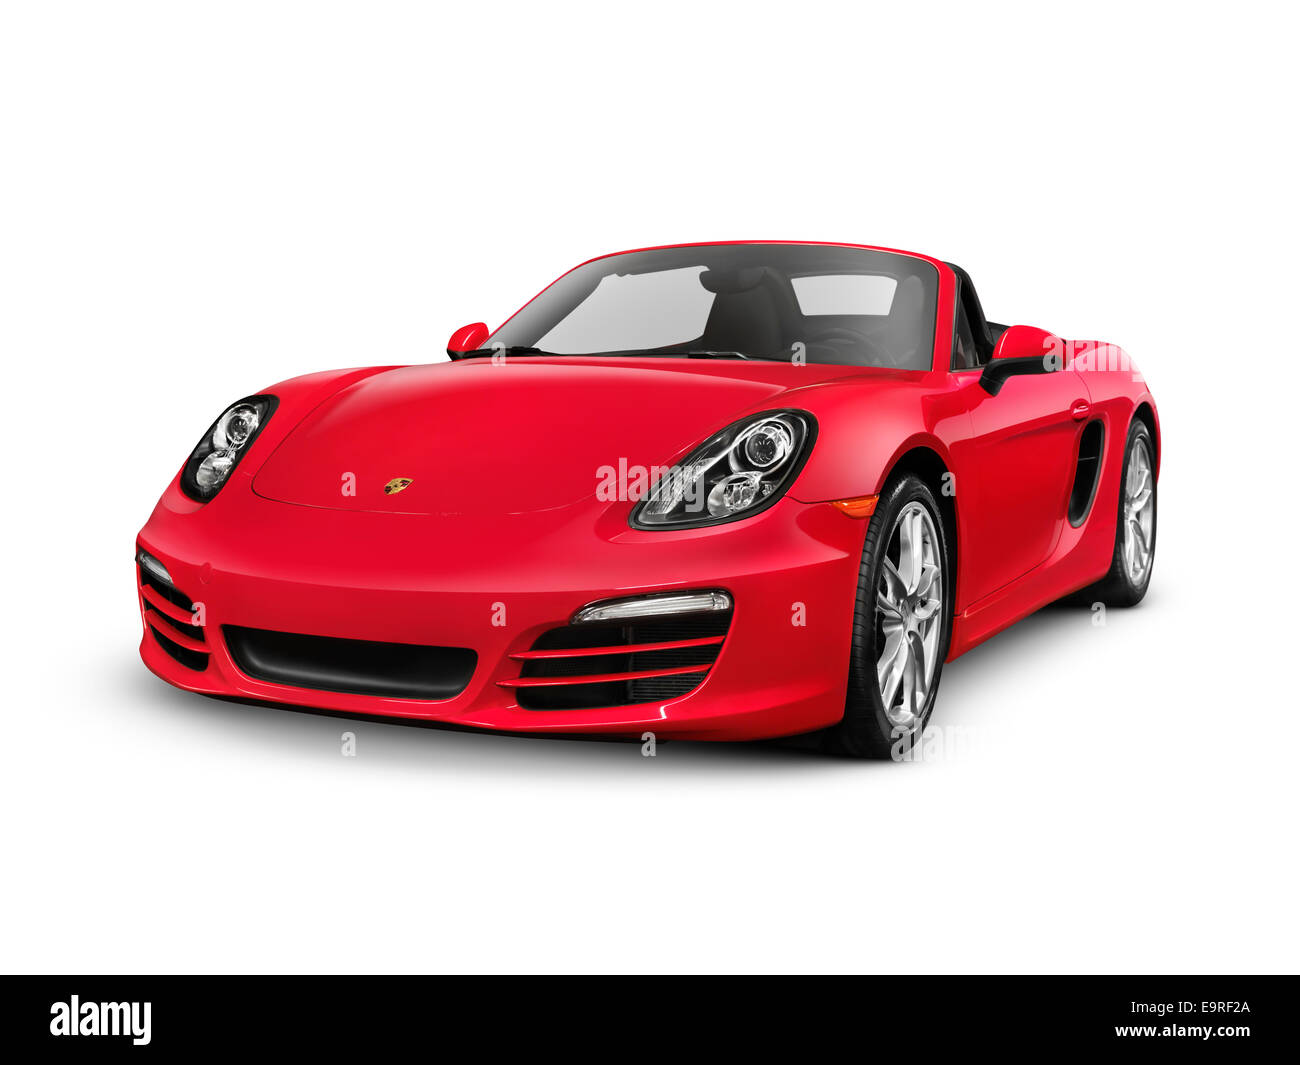 Red 2014 Porsche Boxster S Convertible luxury sports car isolated on white background with clipping path - Stock Image